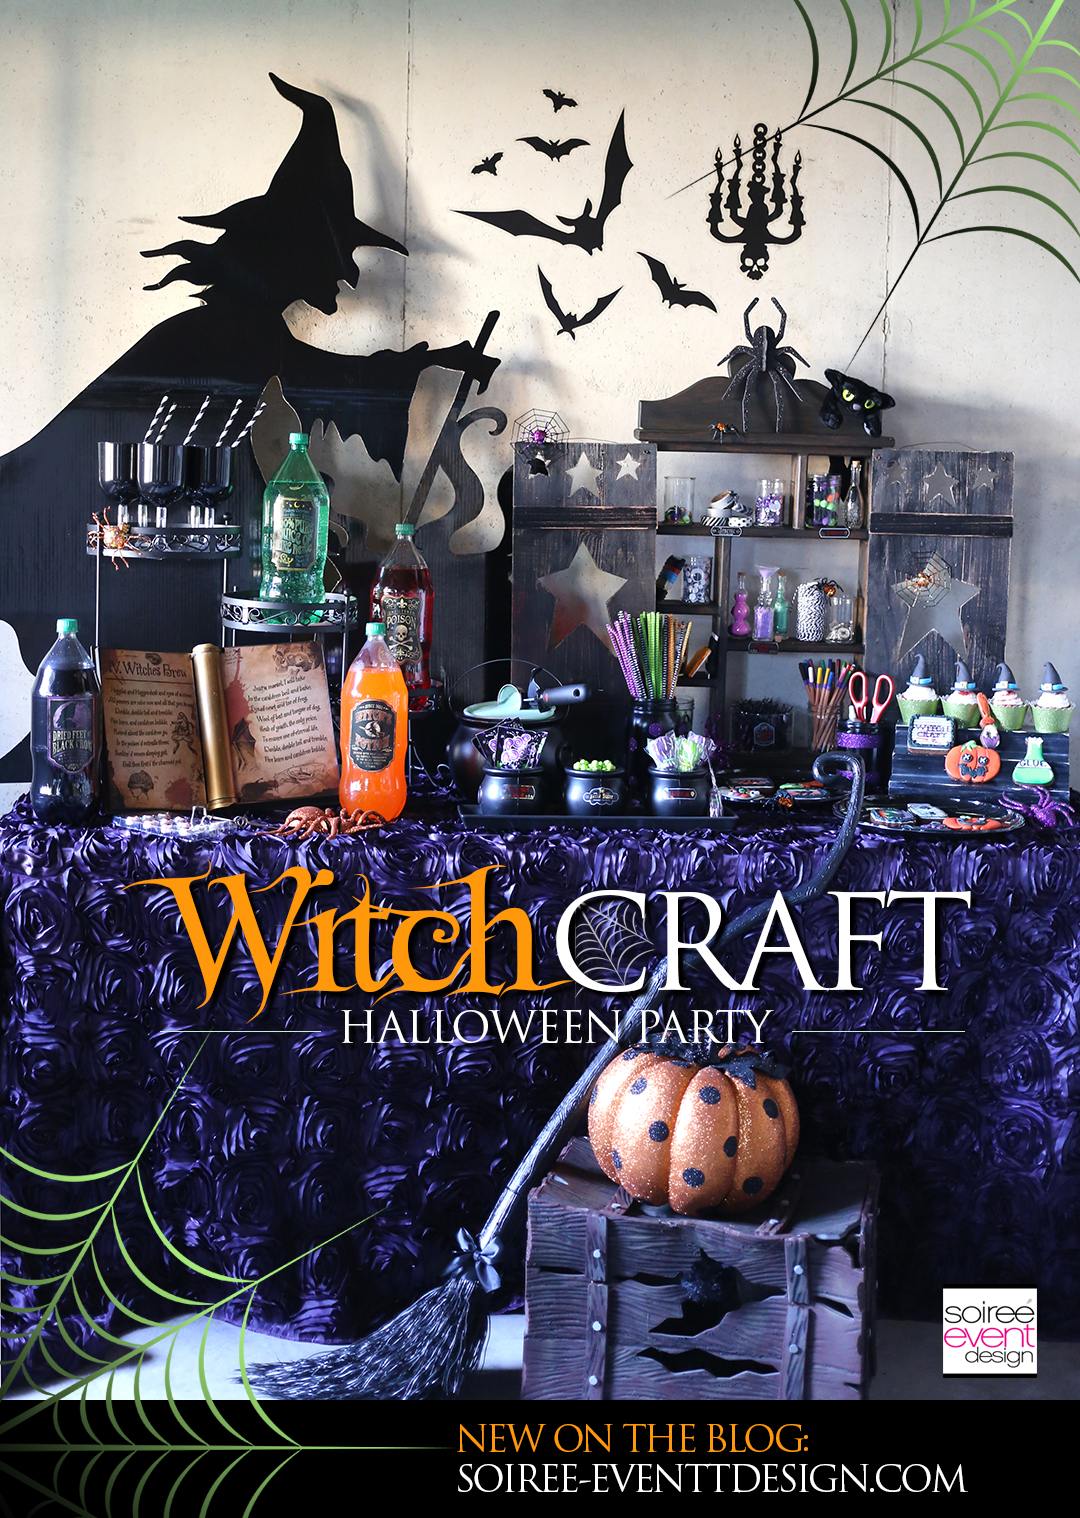 witchcraft-halloween-craft-party